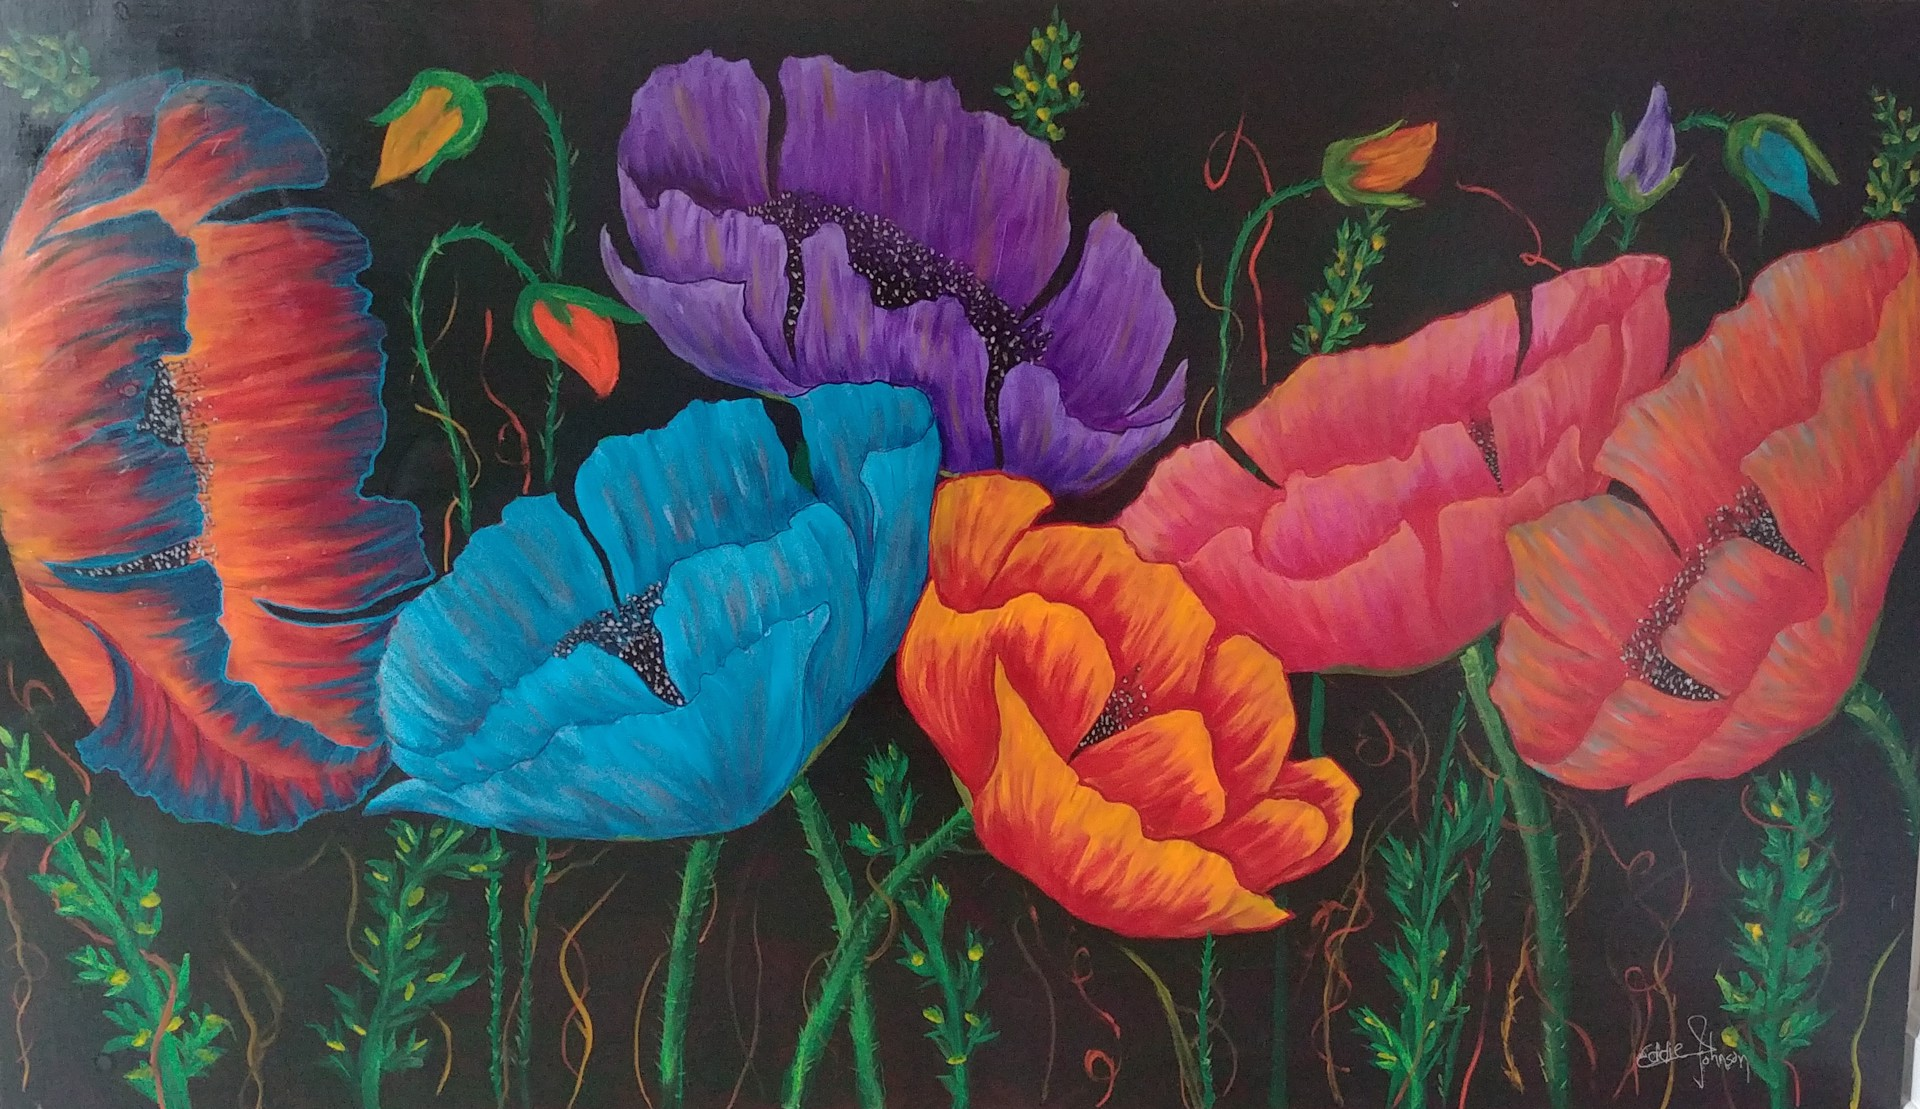 Multicolored Poppies by Edwin Johnson (McMinnville, OR)